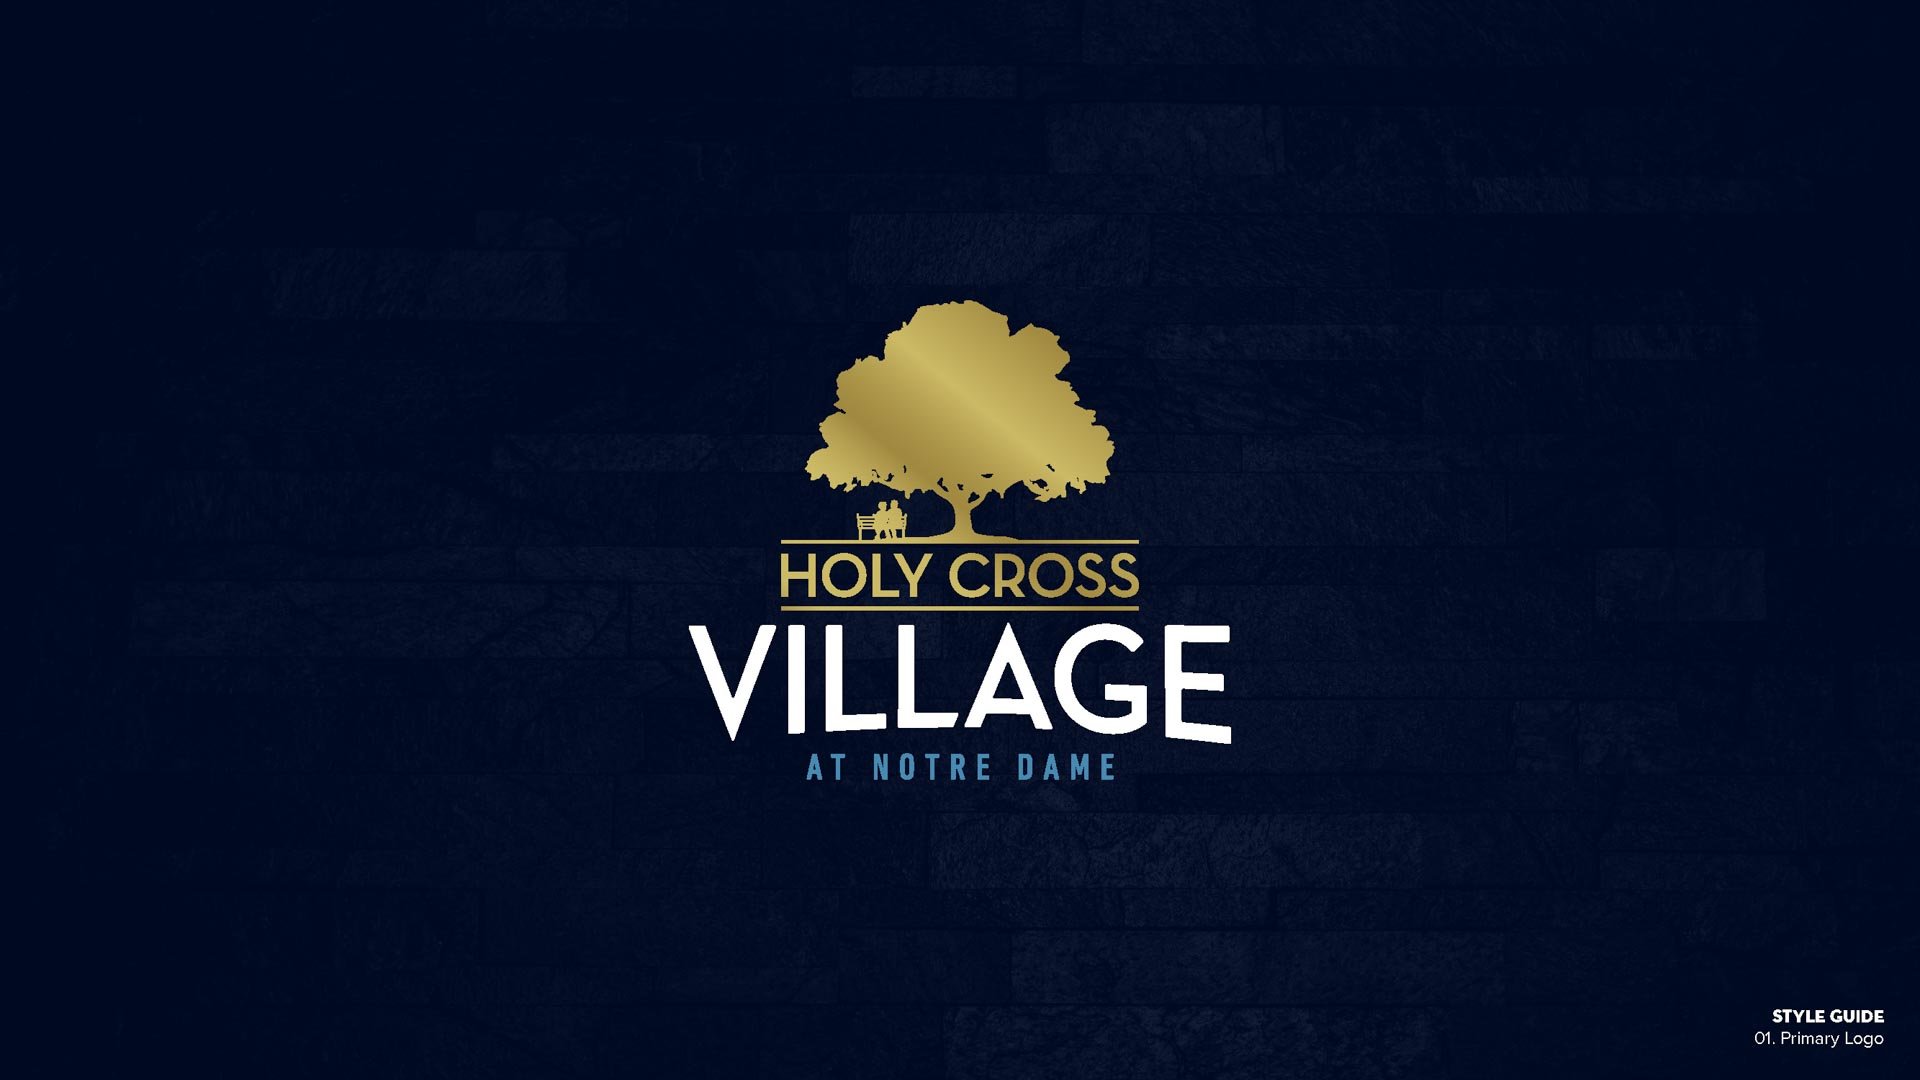 Holy Cross Village's Primary Logo (Unofficial)